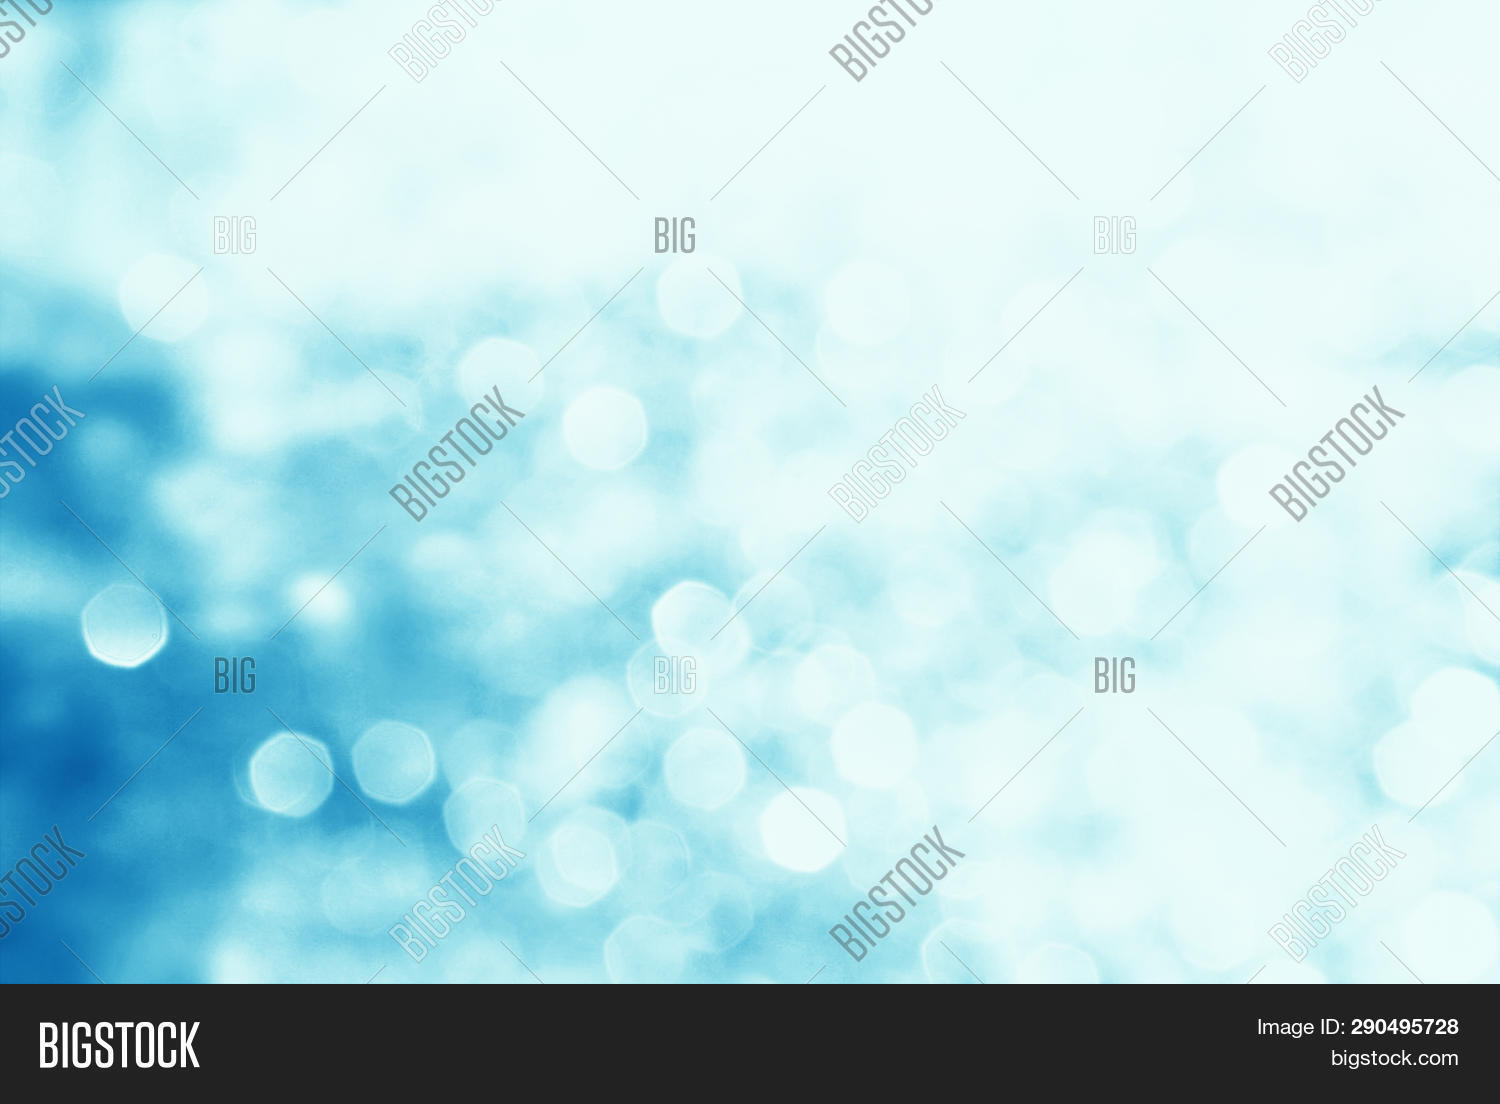 abstract,art,backdrop,background,beautiful,black,blue,blur,blurred,blurry,bokeh,bright,celebration,christmas,circle,color,colorful,dark,decoration,defocused,design,effect,festive,focus,glitter,glow,glowing,holiday,illuminated,light,magic,nature,new,night,party,pattern,round,shine,shiny,sky,soft,space,sparkle,star,texture,wallpaper,white,xmas,year